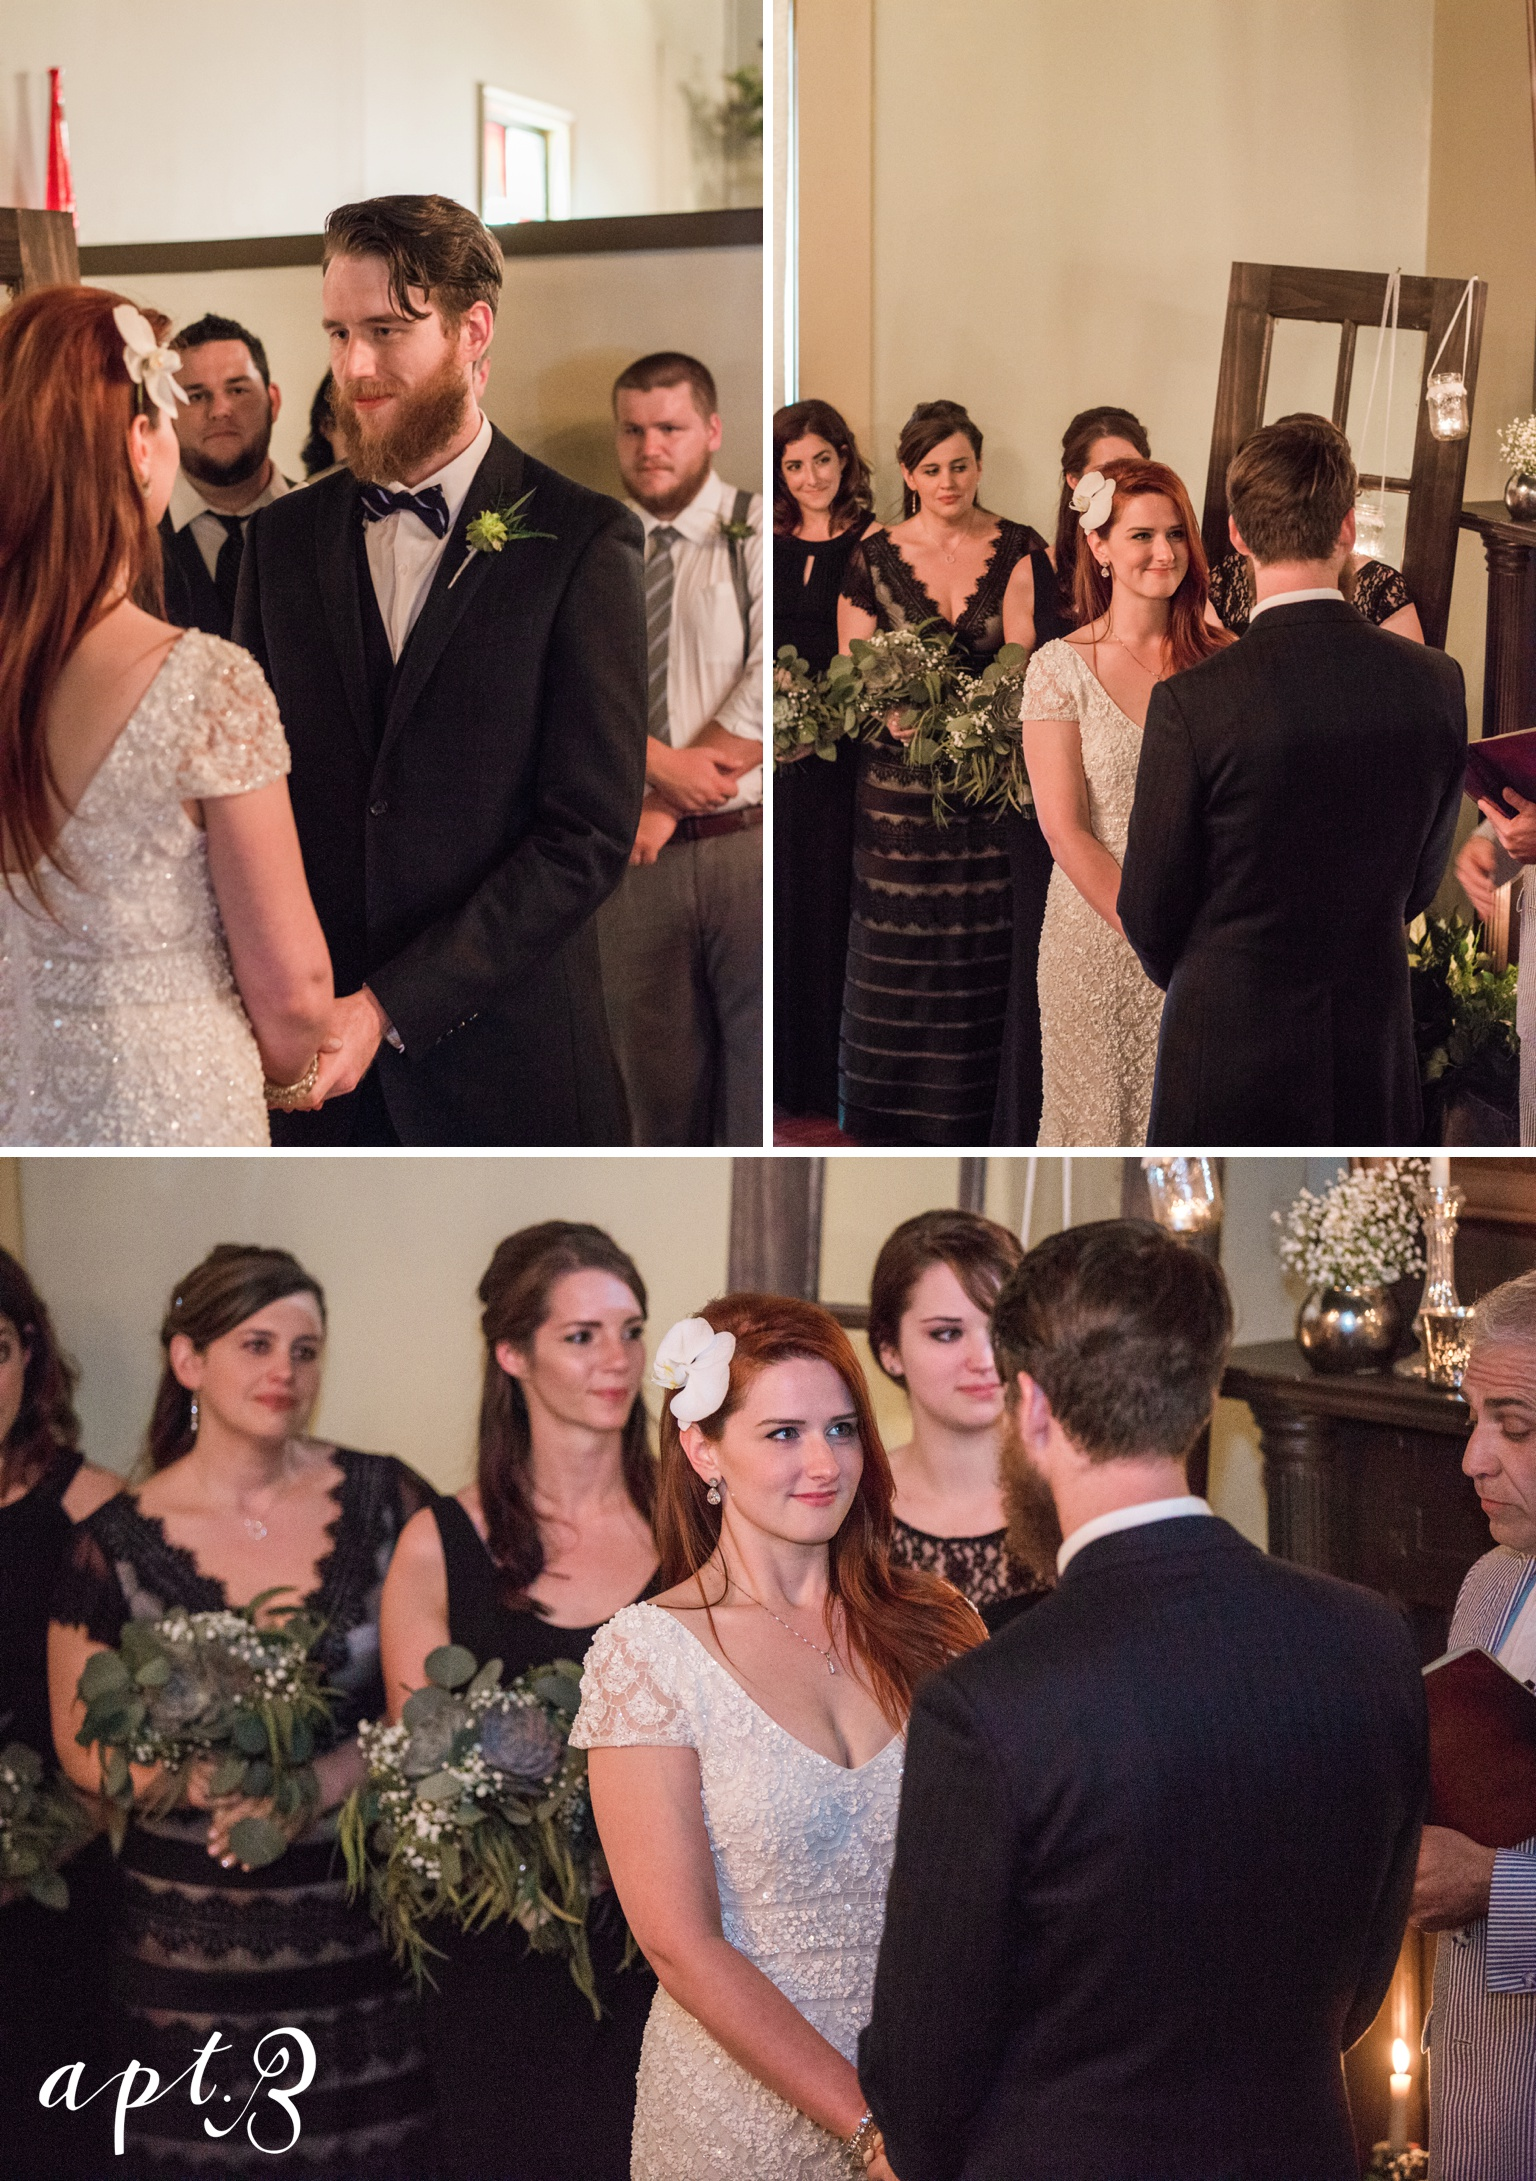 AptBPhotography_SavannahWedding_ChaBella-97.jpg